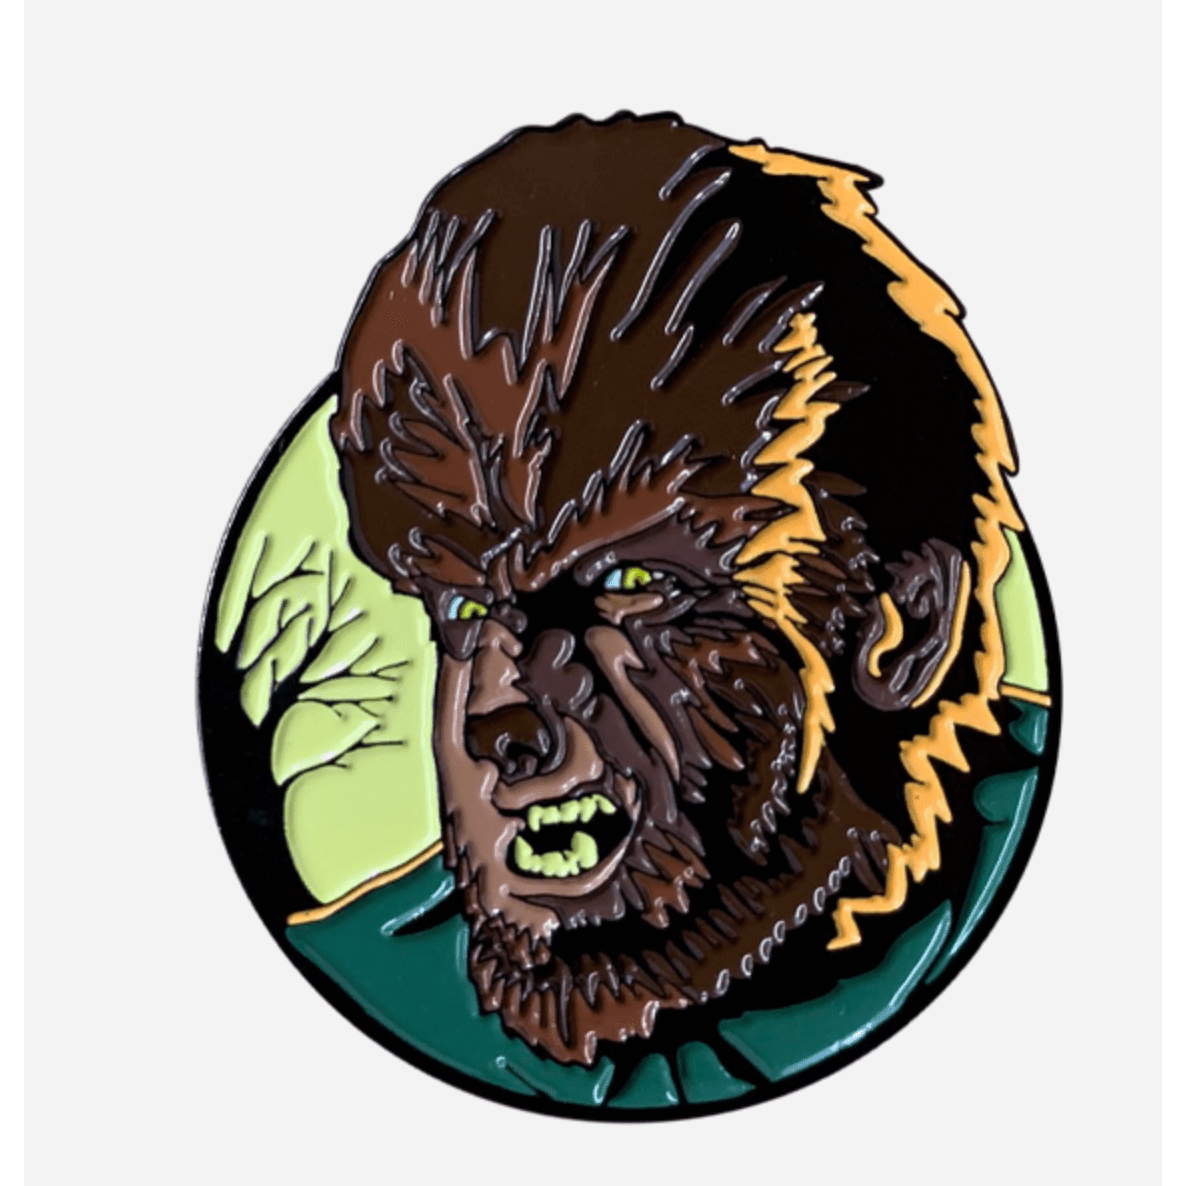 The Wolfman Pin